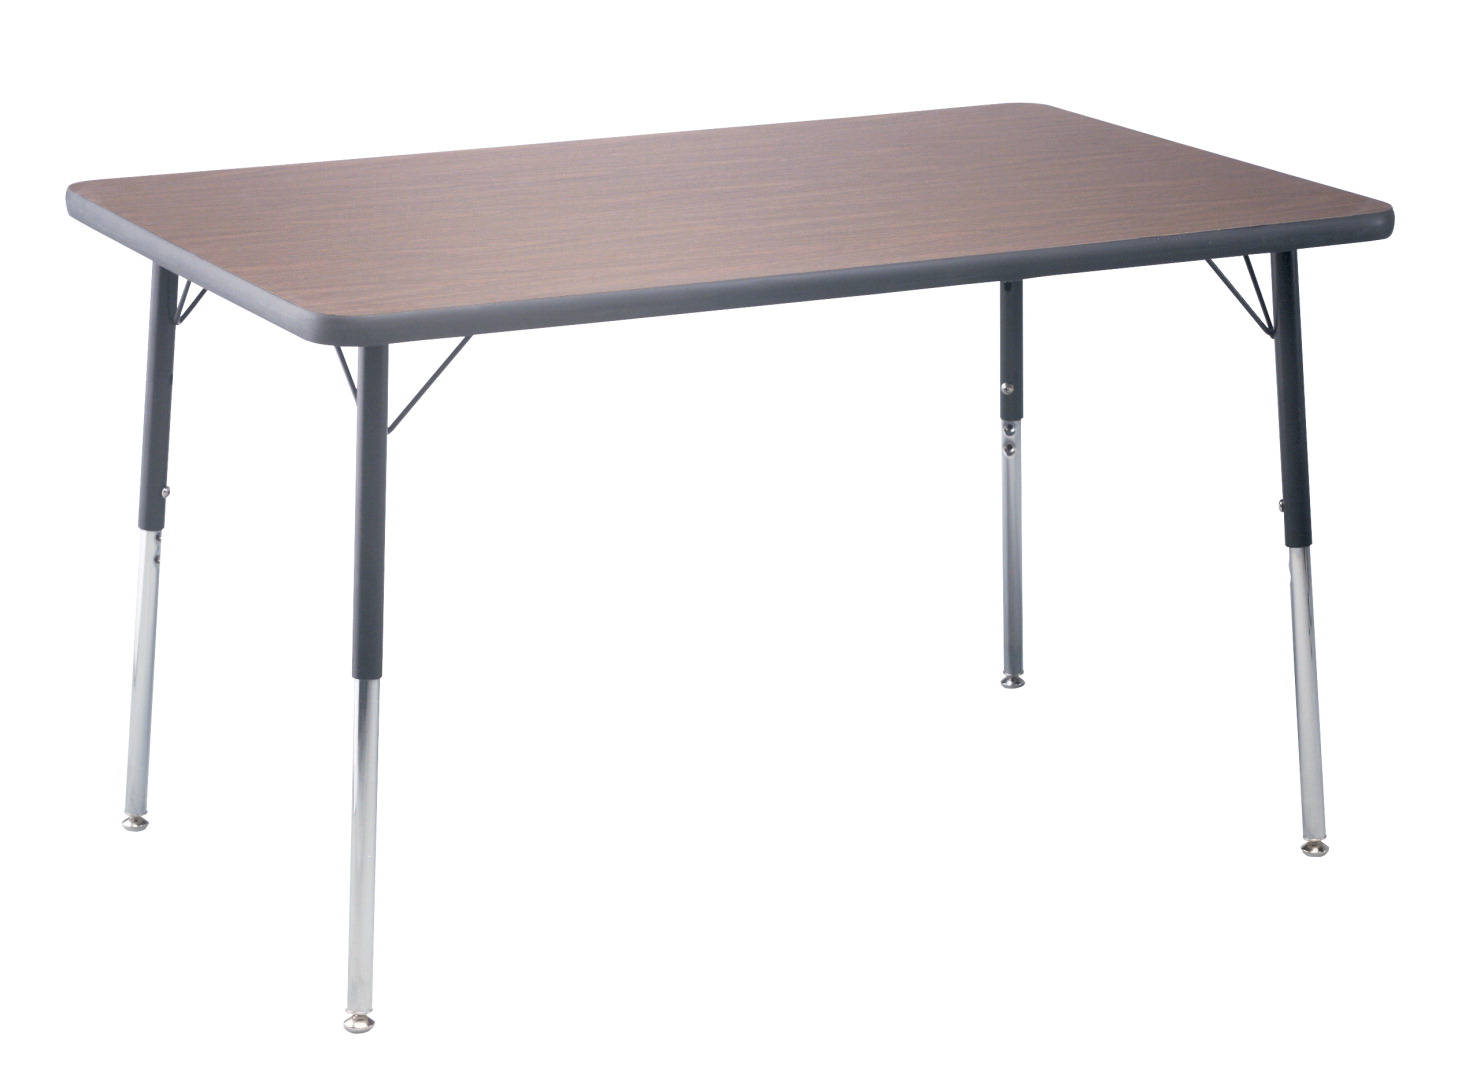 Classroom Select T-Mold Activity Table, Rectangle, Adjustable Height, 30 x 60 Inches, Various Options